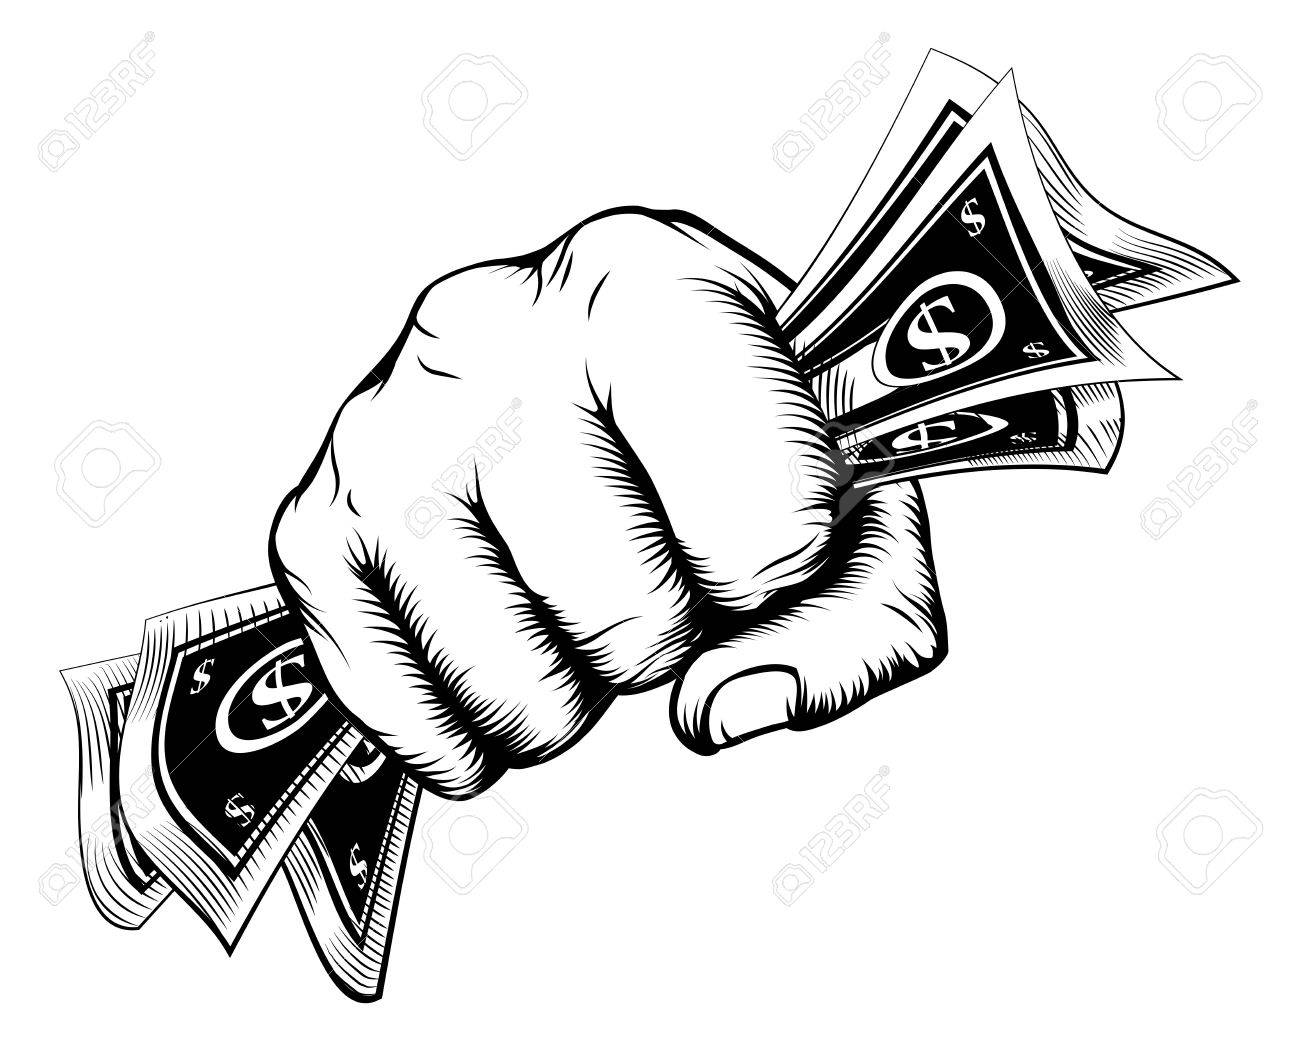 1300x1051 A Fist Holding Cash Money Dollar Bills In A Vintage Woodcut Style